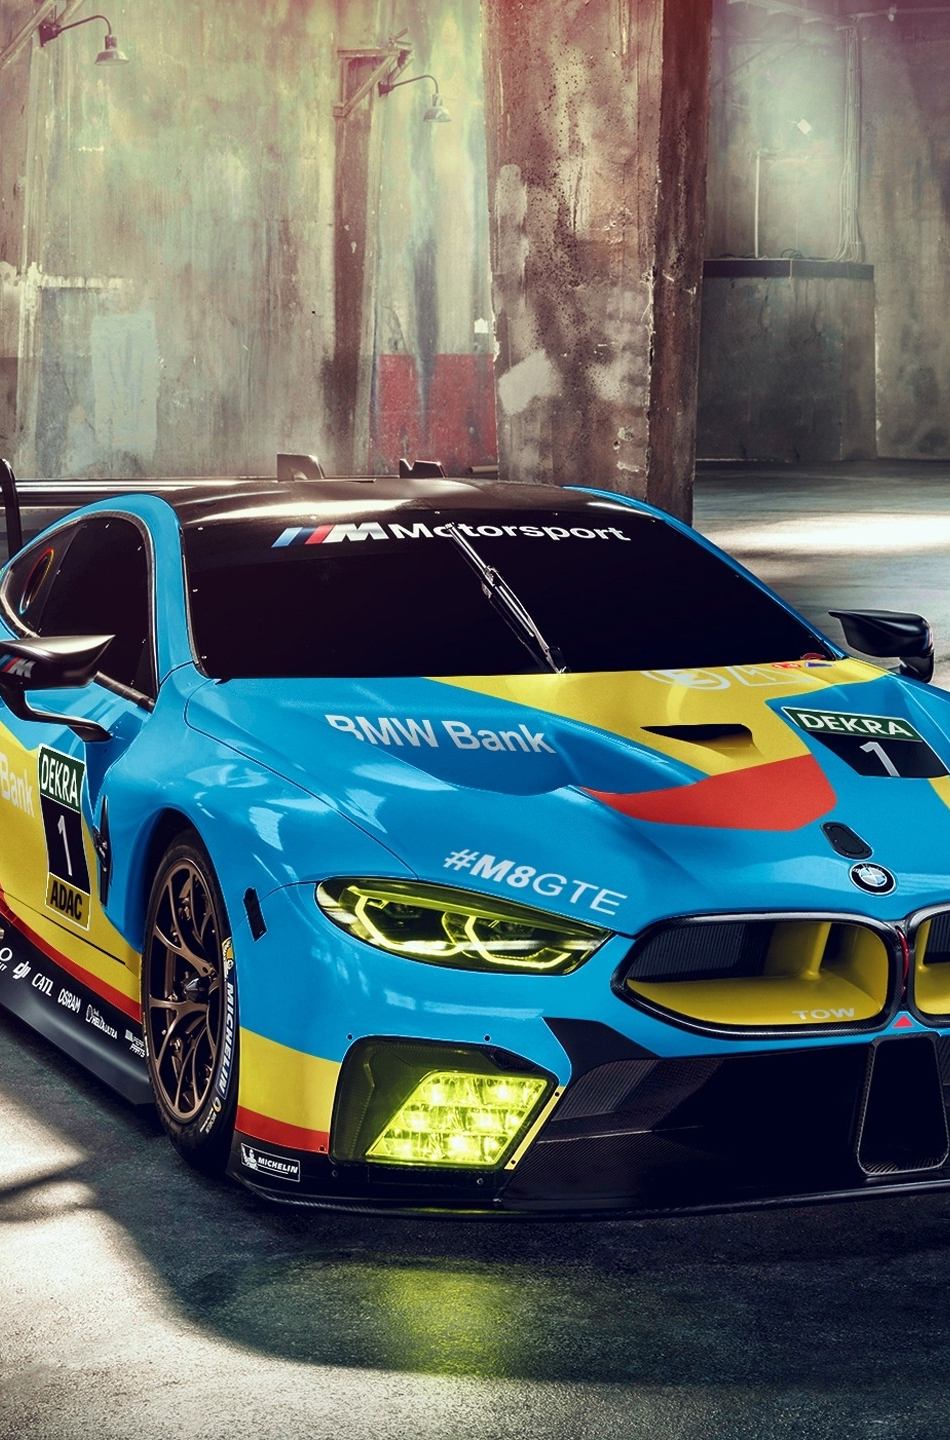 Download 950x1534 Wallpaper Bmw M8 Gte Front Sports Car Iphone